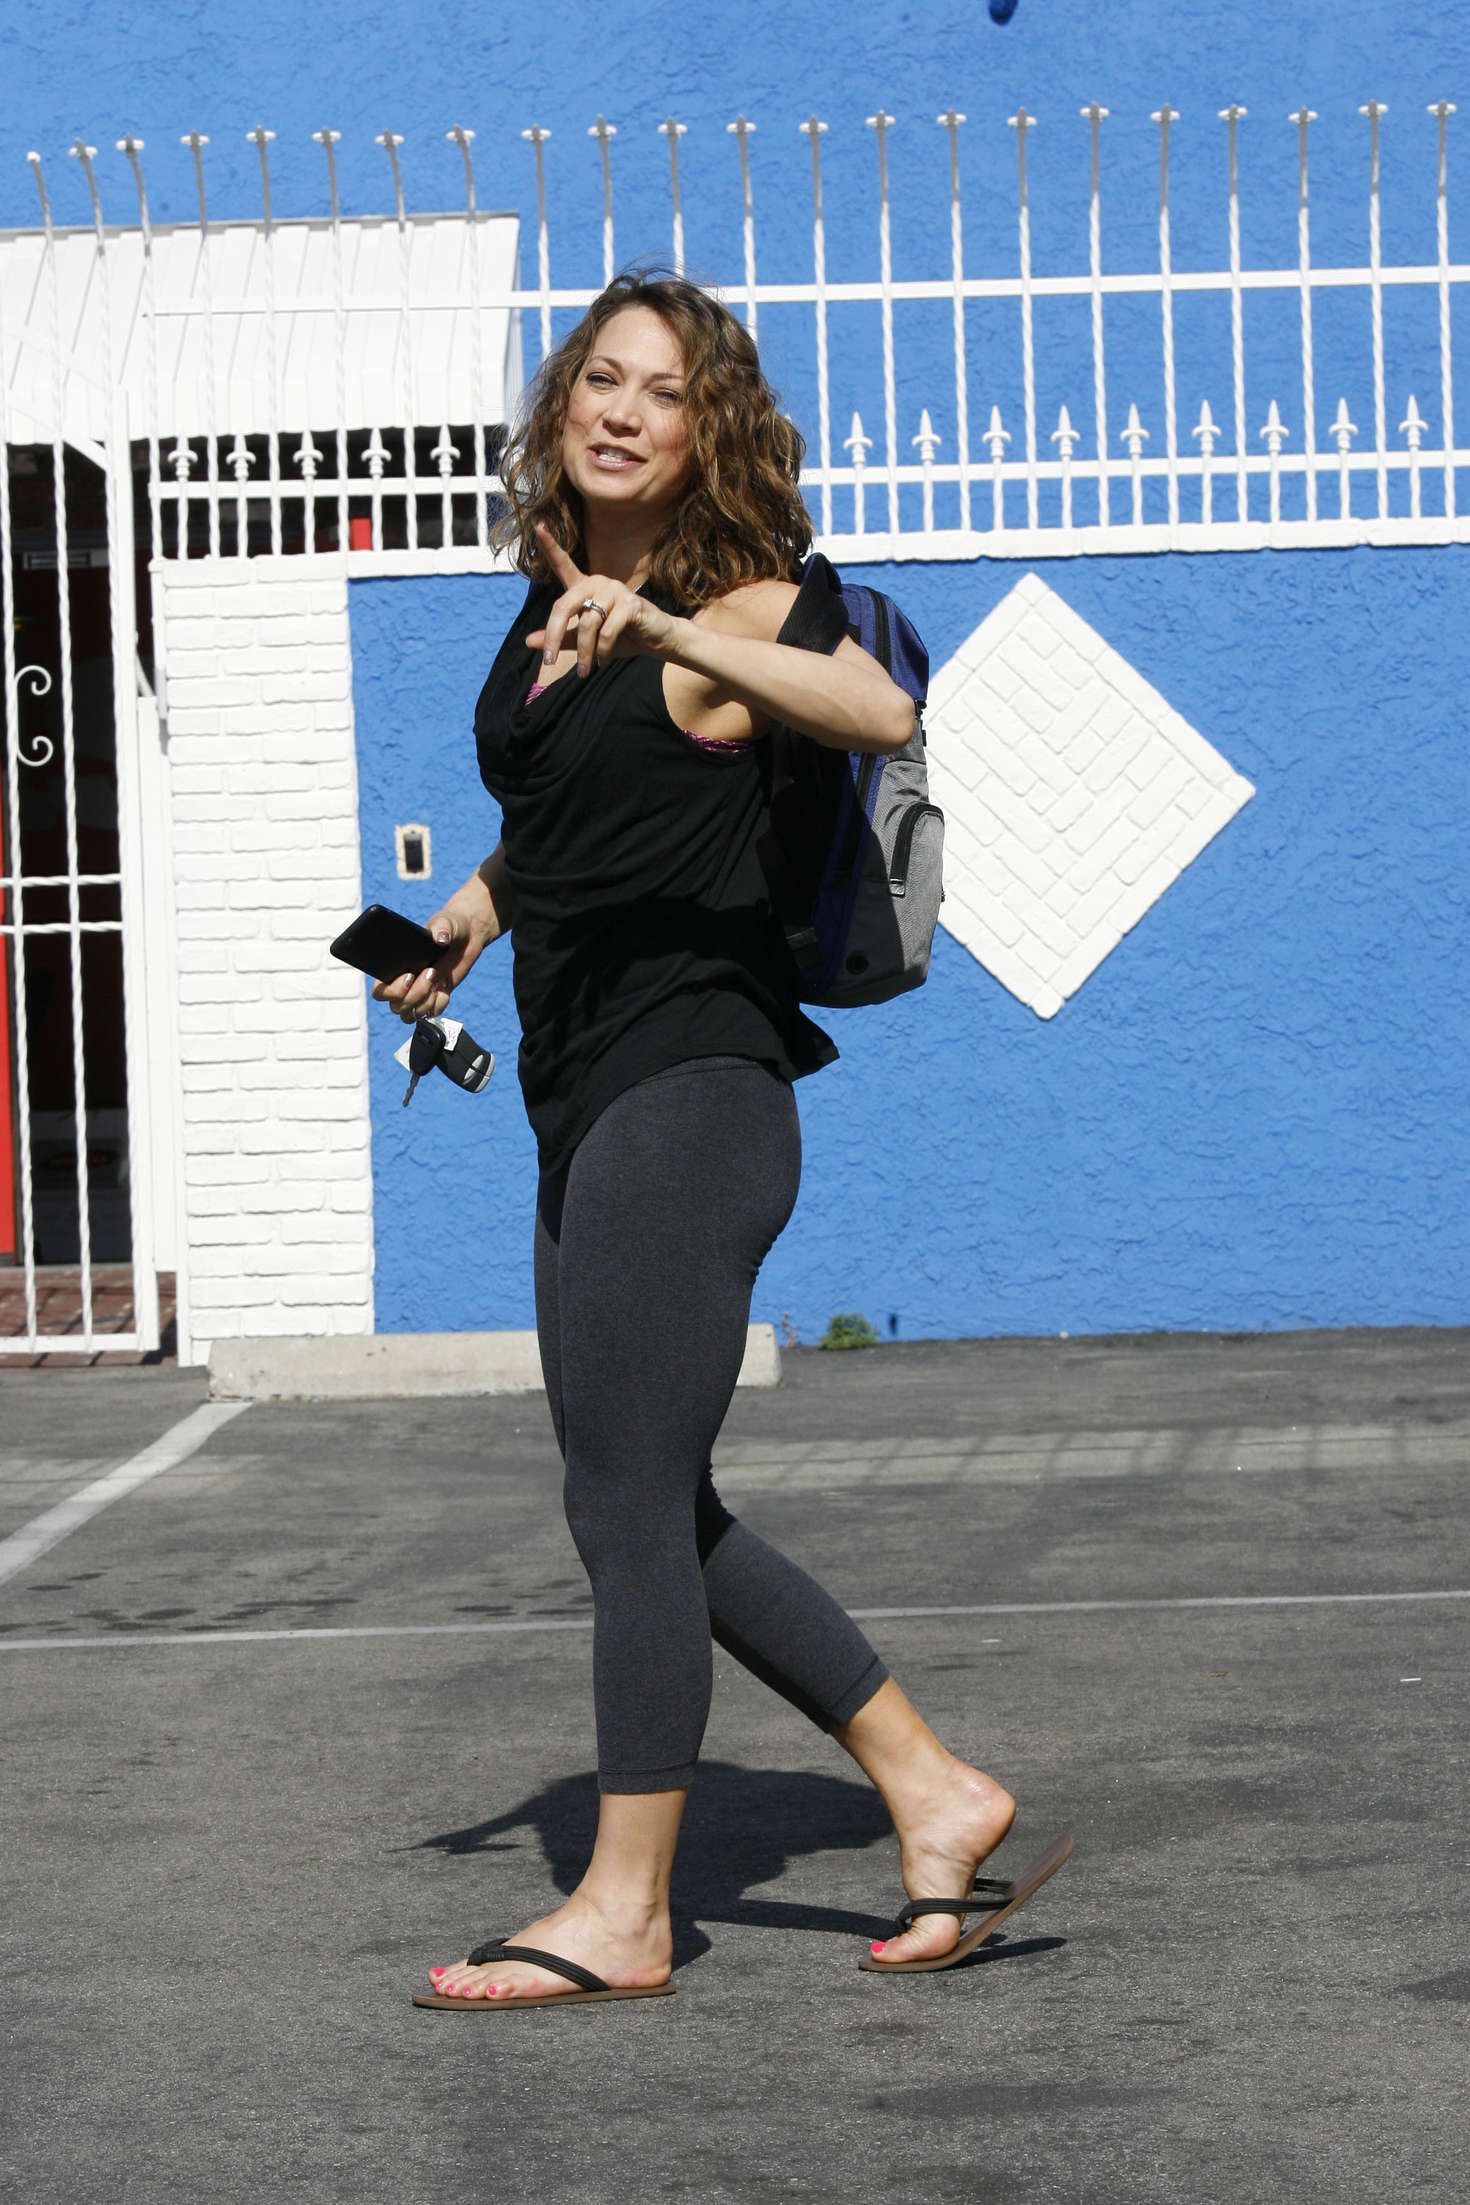 Ginger Zee Hot Pics with regard to ginger zee at dwts dance practice in hollywood